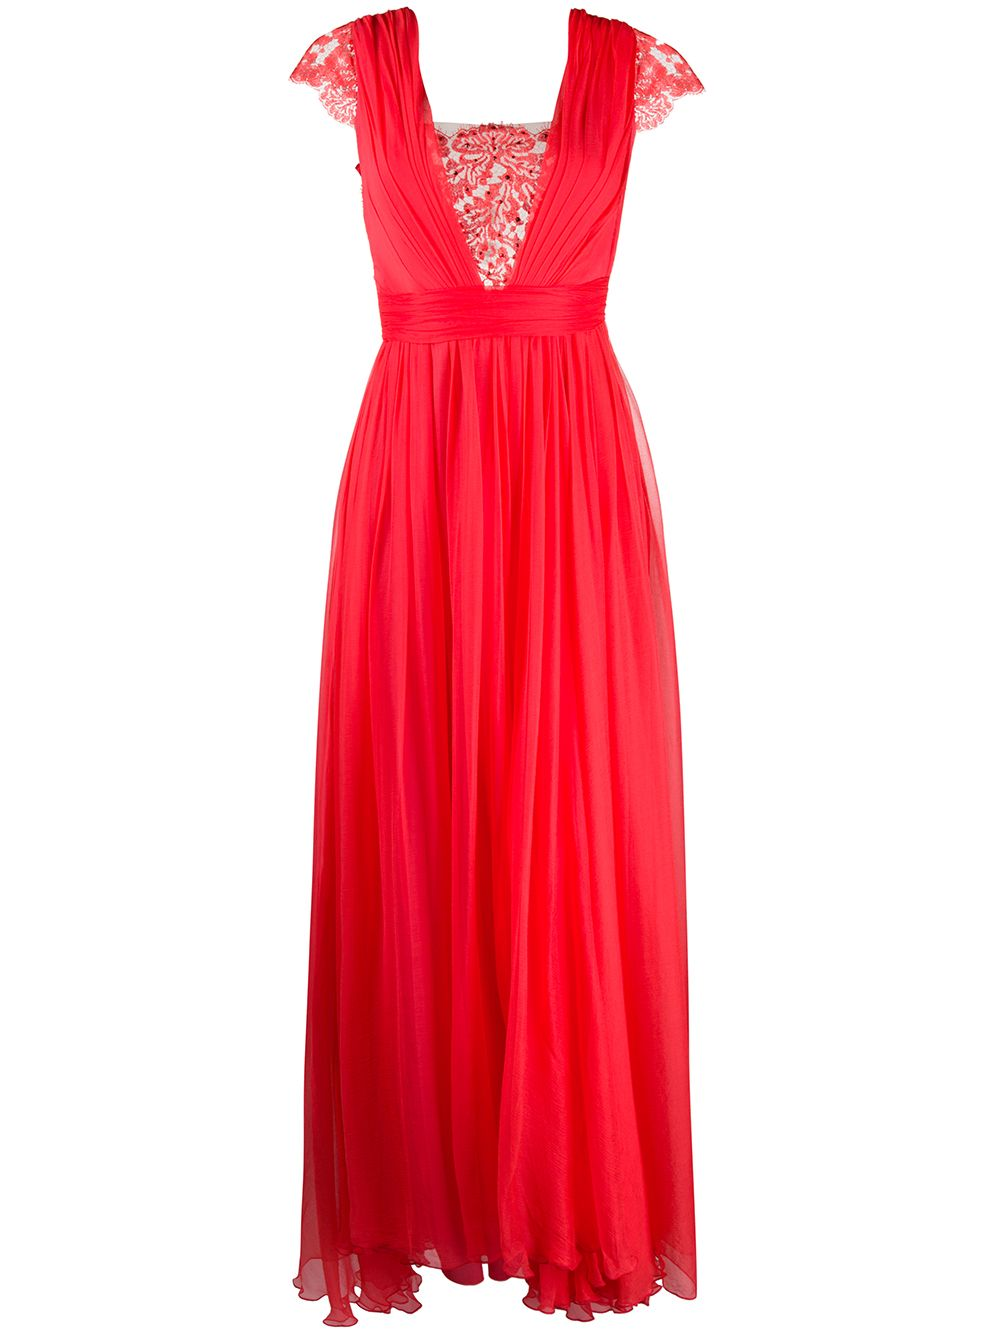 Bright-red maxi dress featuring a pleated design RHEA COSTA |  | 20208DCORAL